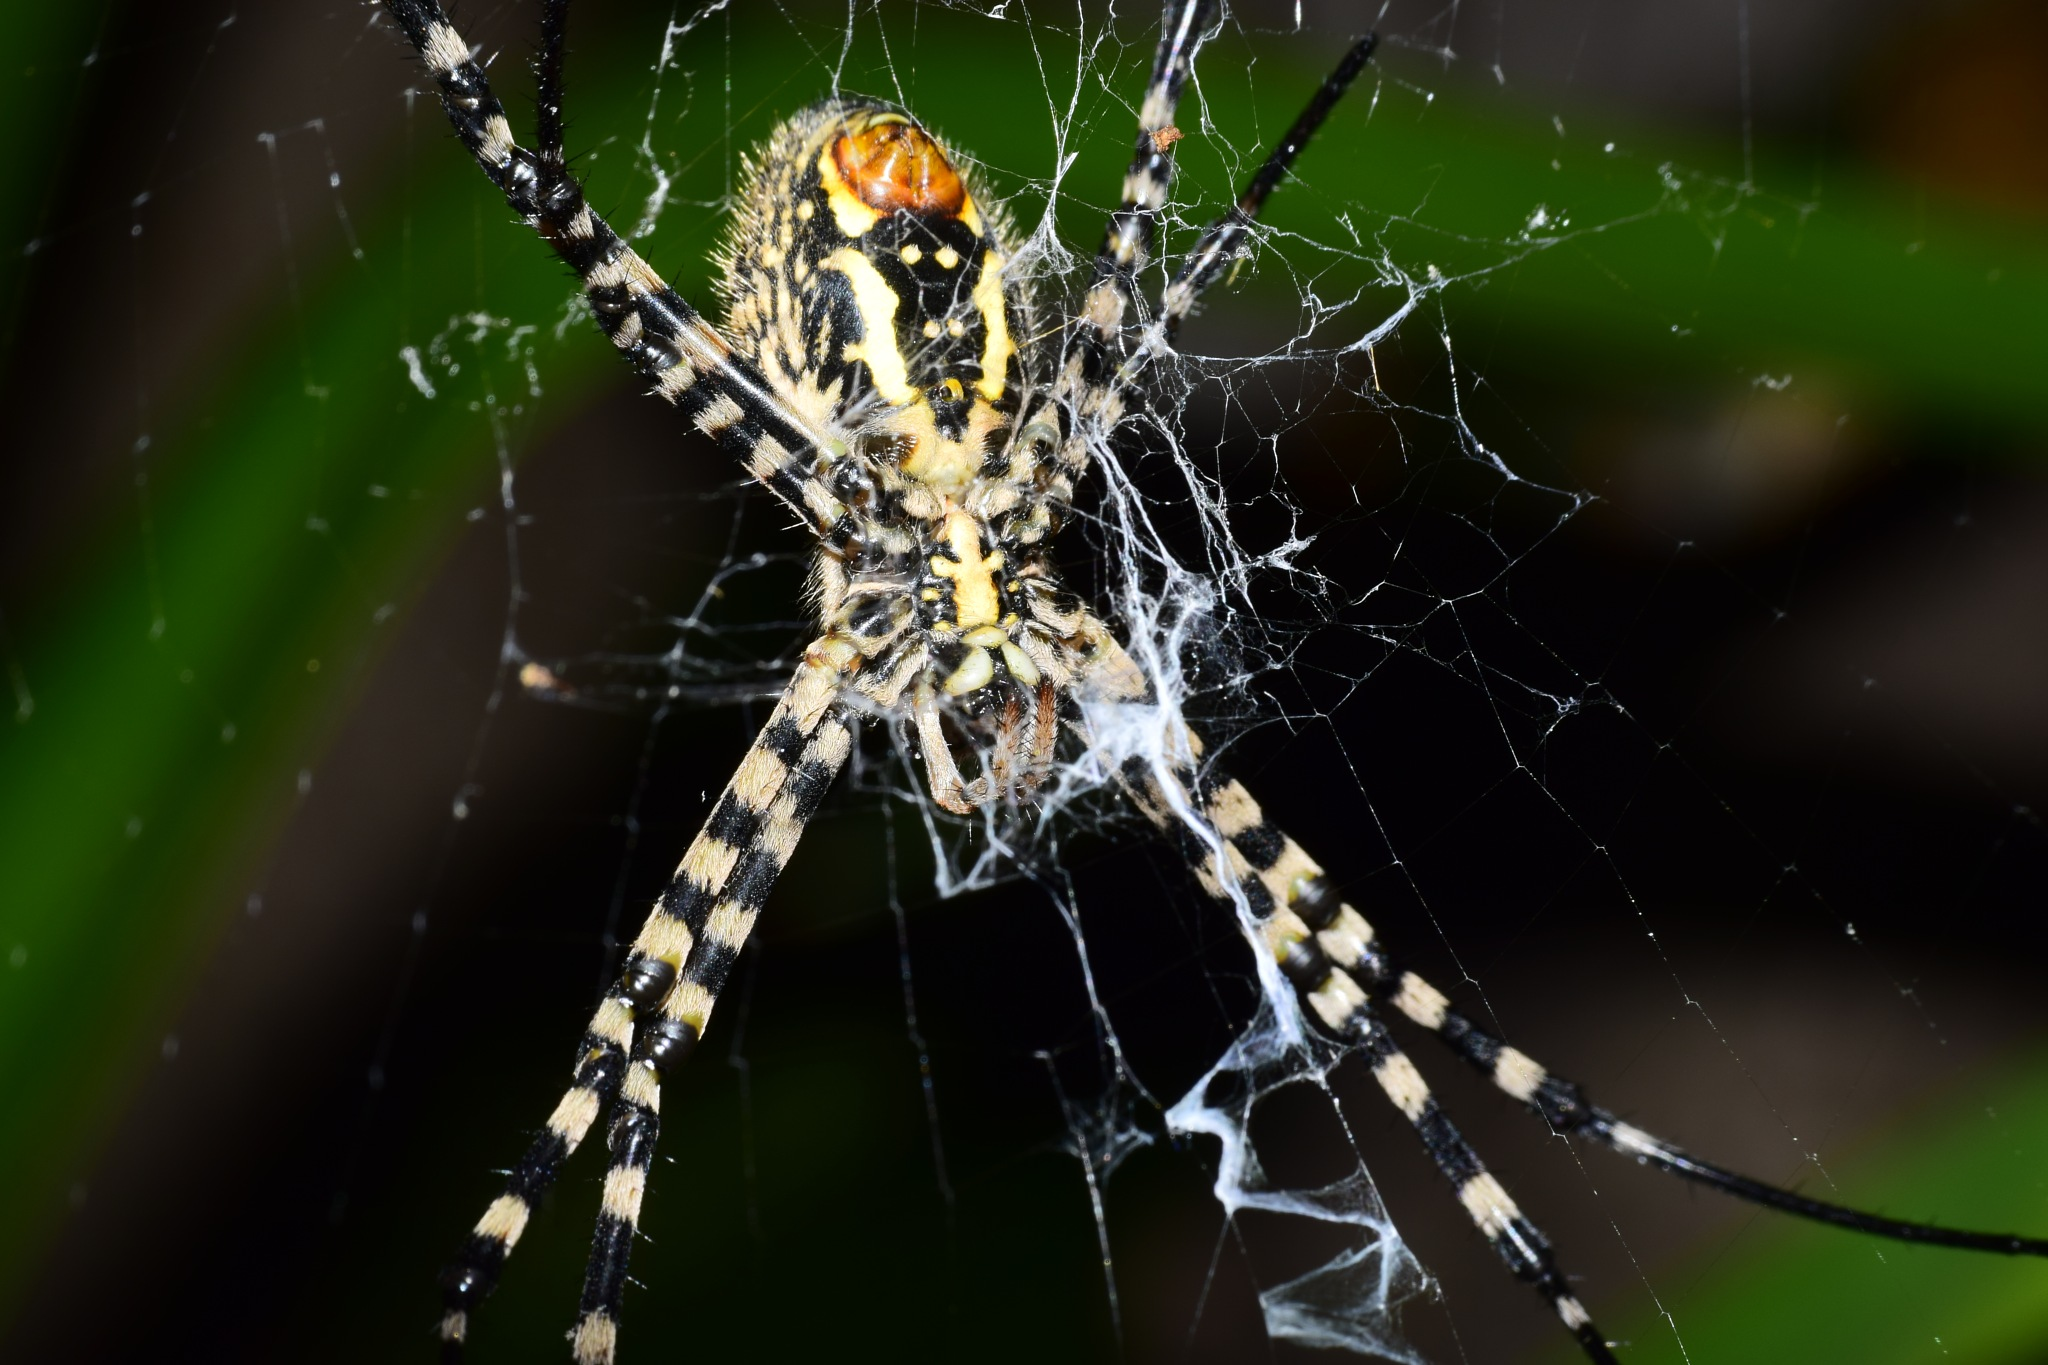 Spider 2 by Dinarte Rodrigues